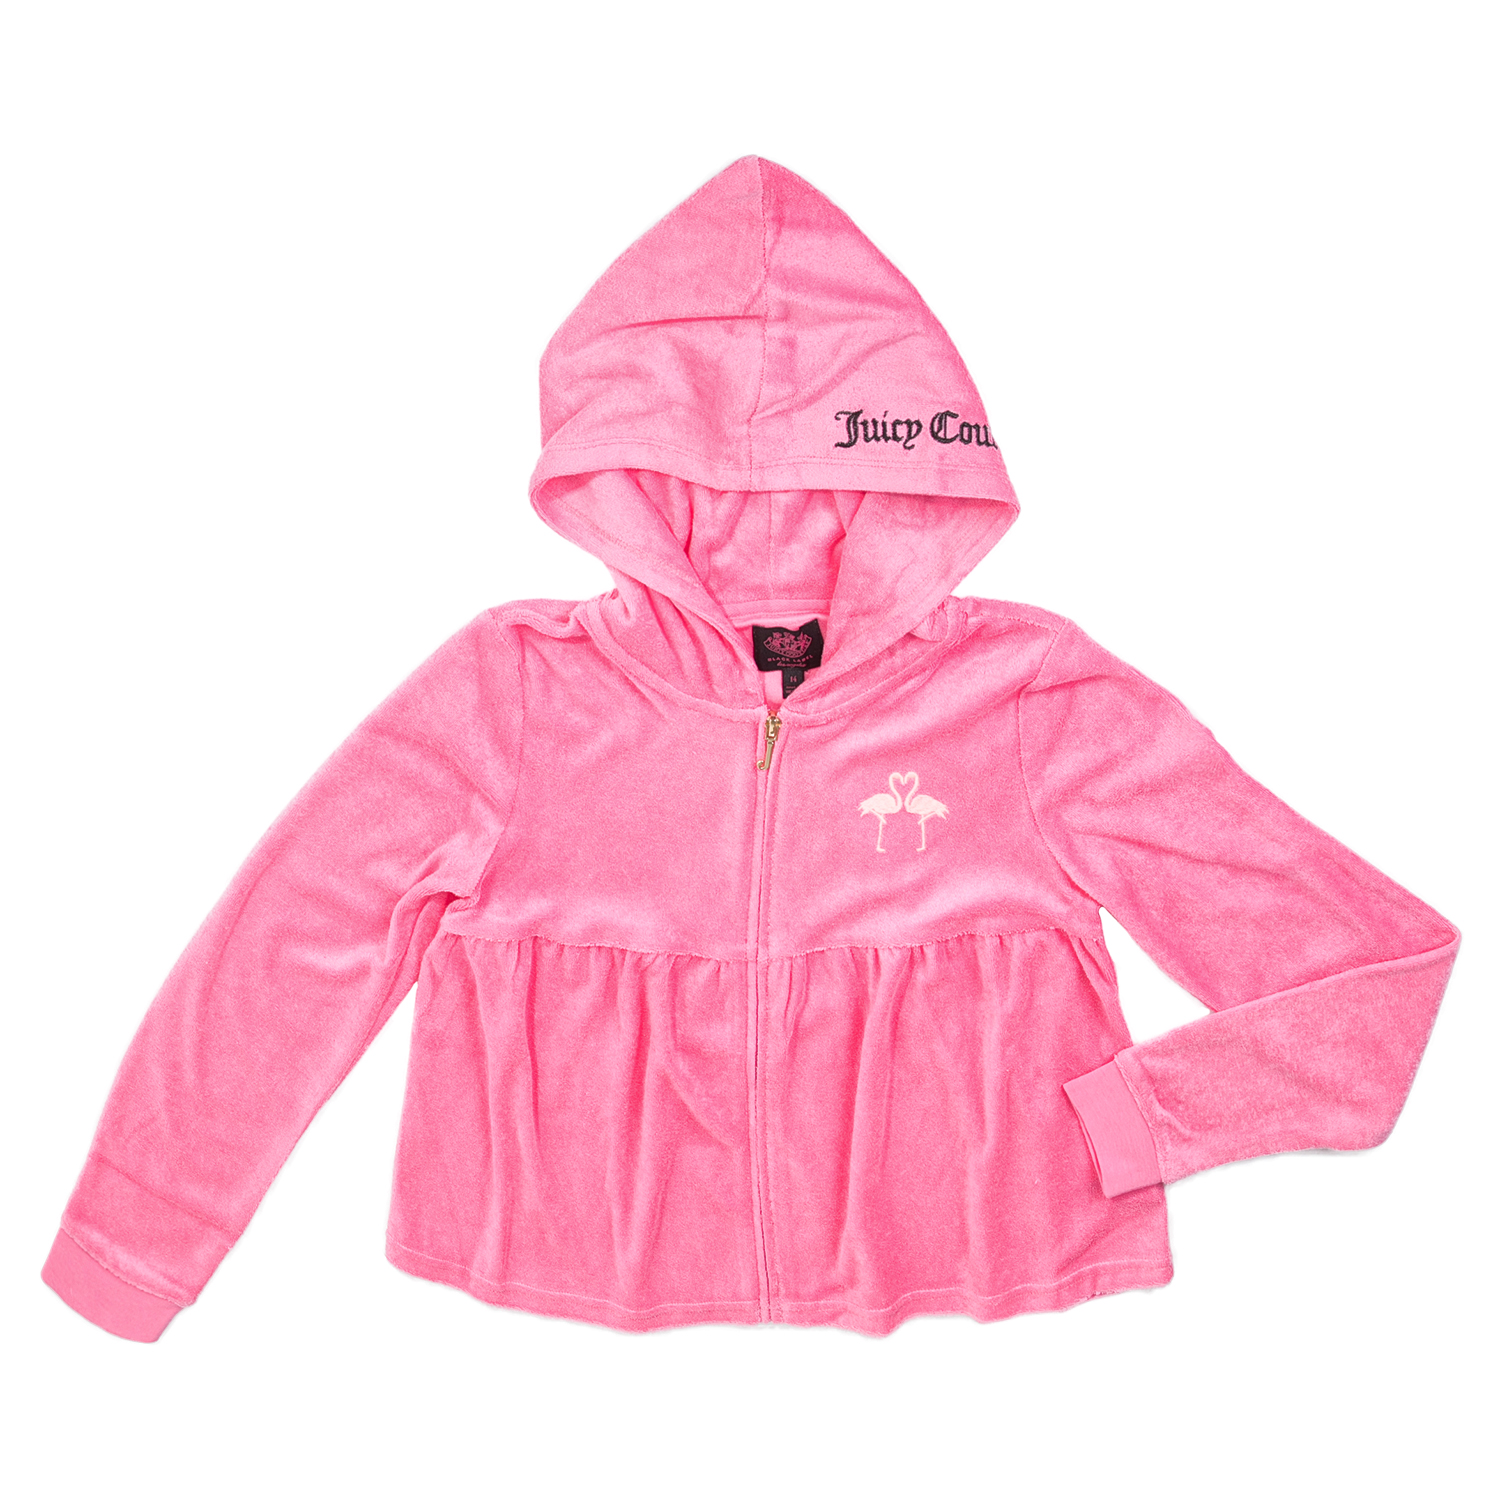 JUICY COUTURE KIDS – Κοριτσίστικη ζακέτα JUICY COUTURE MICROTERRY FLAMINGO KISS φούξια